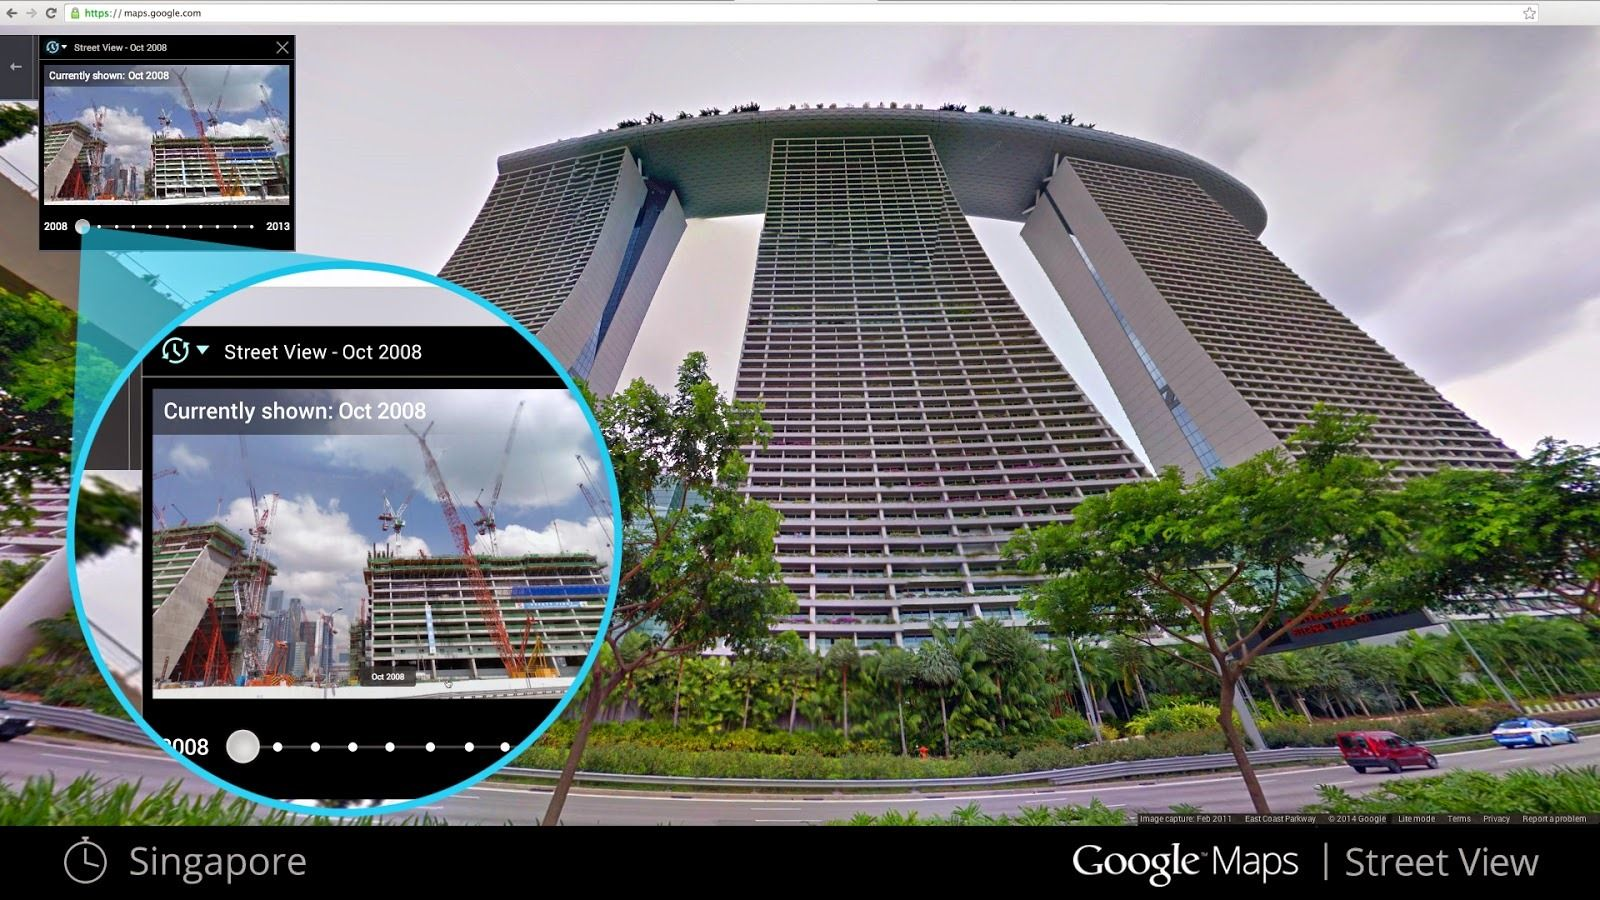 Google Maps is rolling out time travel.  What?  Check it out:  http://ismooth.com/blogs/news/13863365-google-maps-street-view-now-allows-time-travel #Google #GoogleMaps #TechNews #CoolStuff